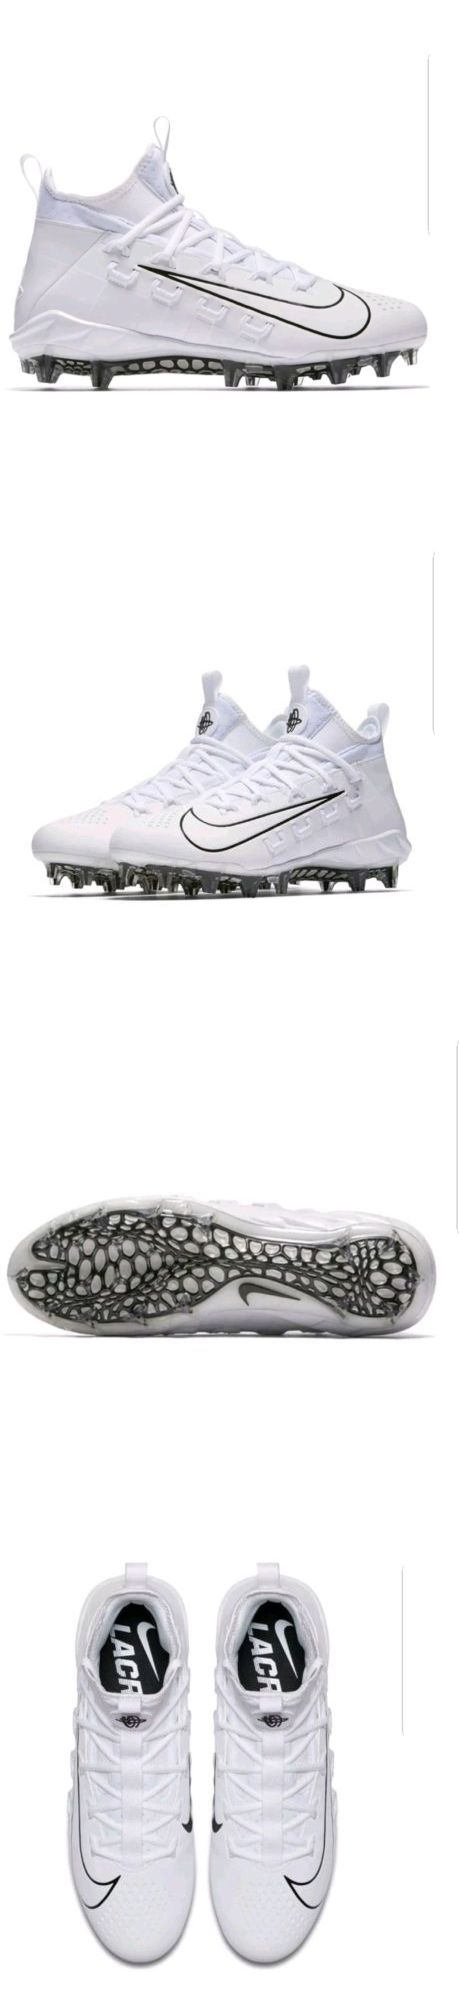 7e170878a Footwear 159154  Nike Alpha Huarache 6 Elite Lax Lacrosse Cleats White  Black 880409-111 Size 9 -  BUY IT NOW ONLY   74.77 on  eBay  footwear  alpha  ...